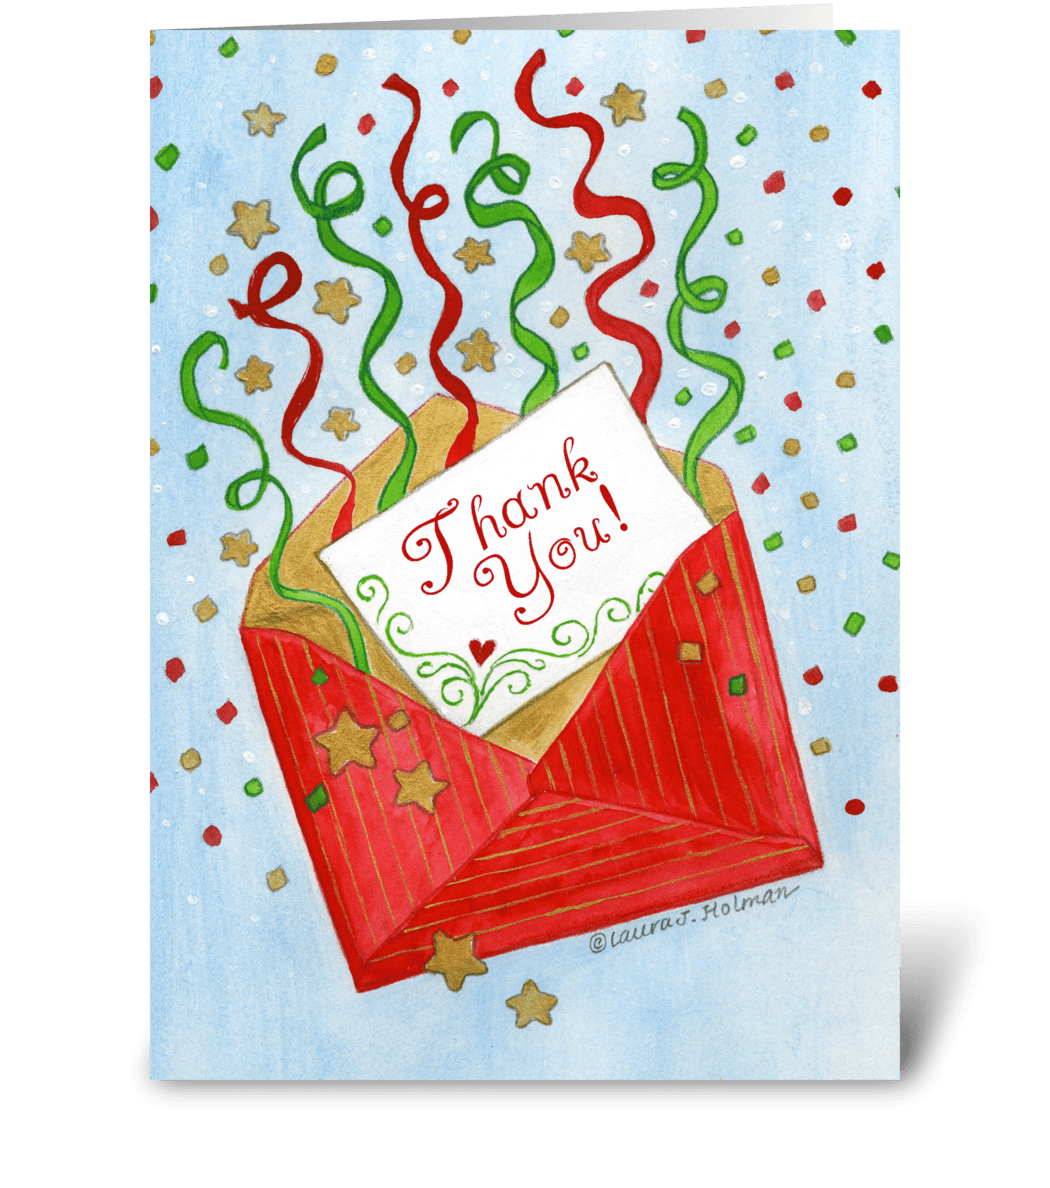 Christmas Gift Red Envelope Thank You Send This Greeting Card Designed By The Art Of Laura J Holman Card Gnome